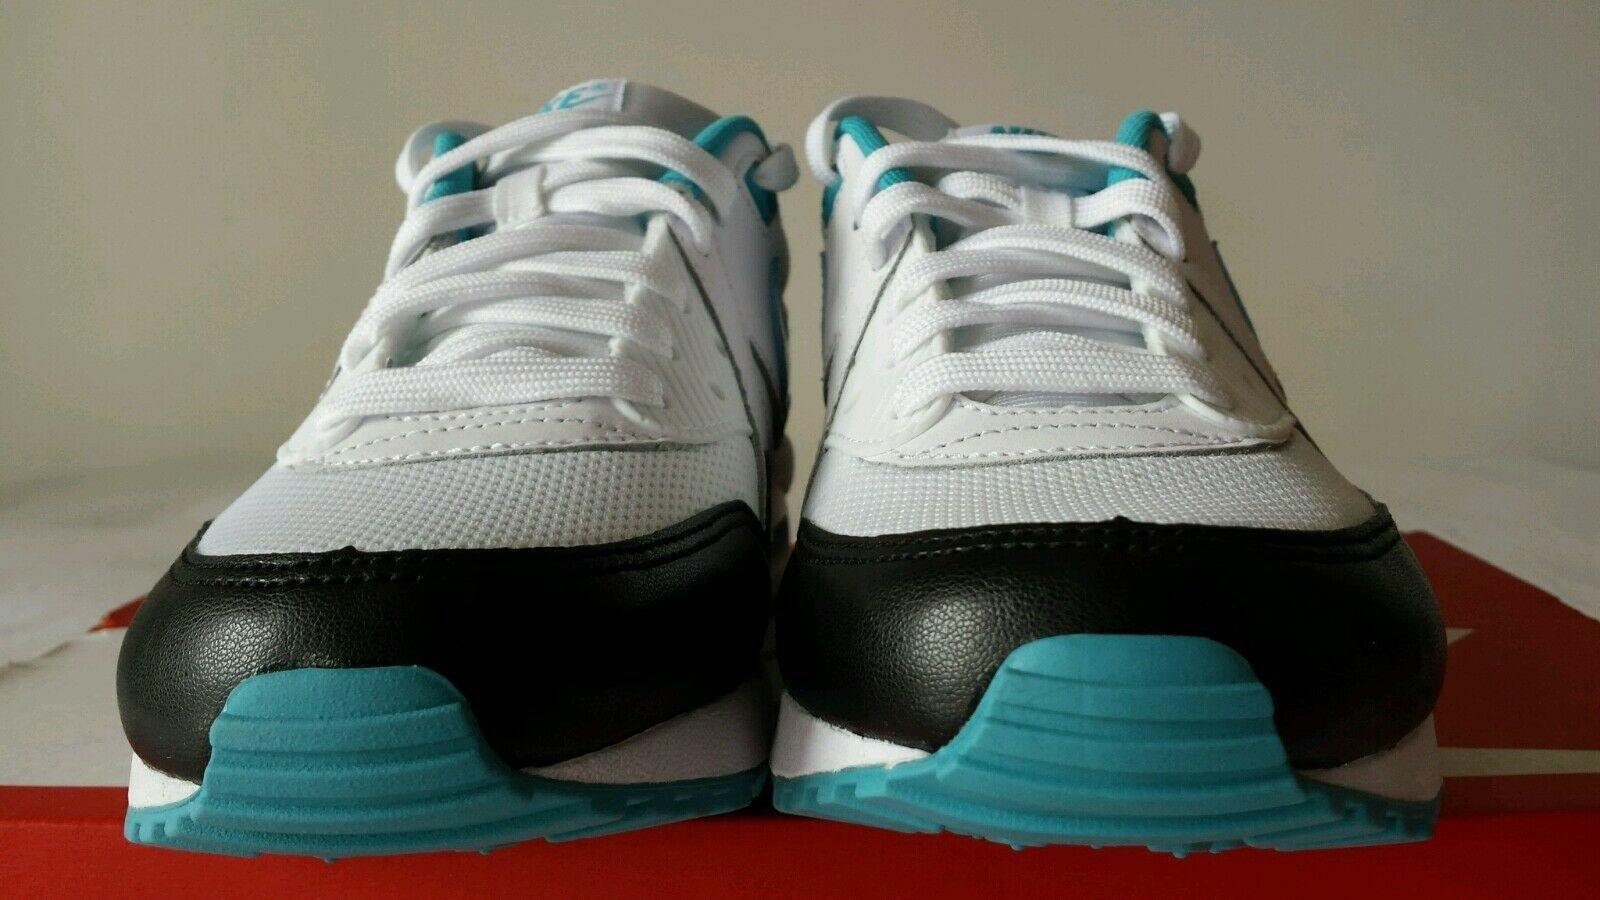 NIKE AIR MAX MAX MAX 1 LIGHT NERA BIANCA verde SMERALDO N.38,5 LIMITED EDITION OKKSPORT d7ac50